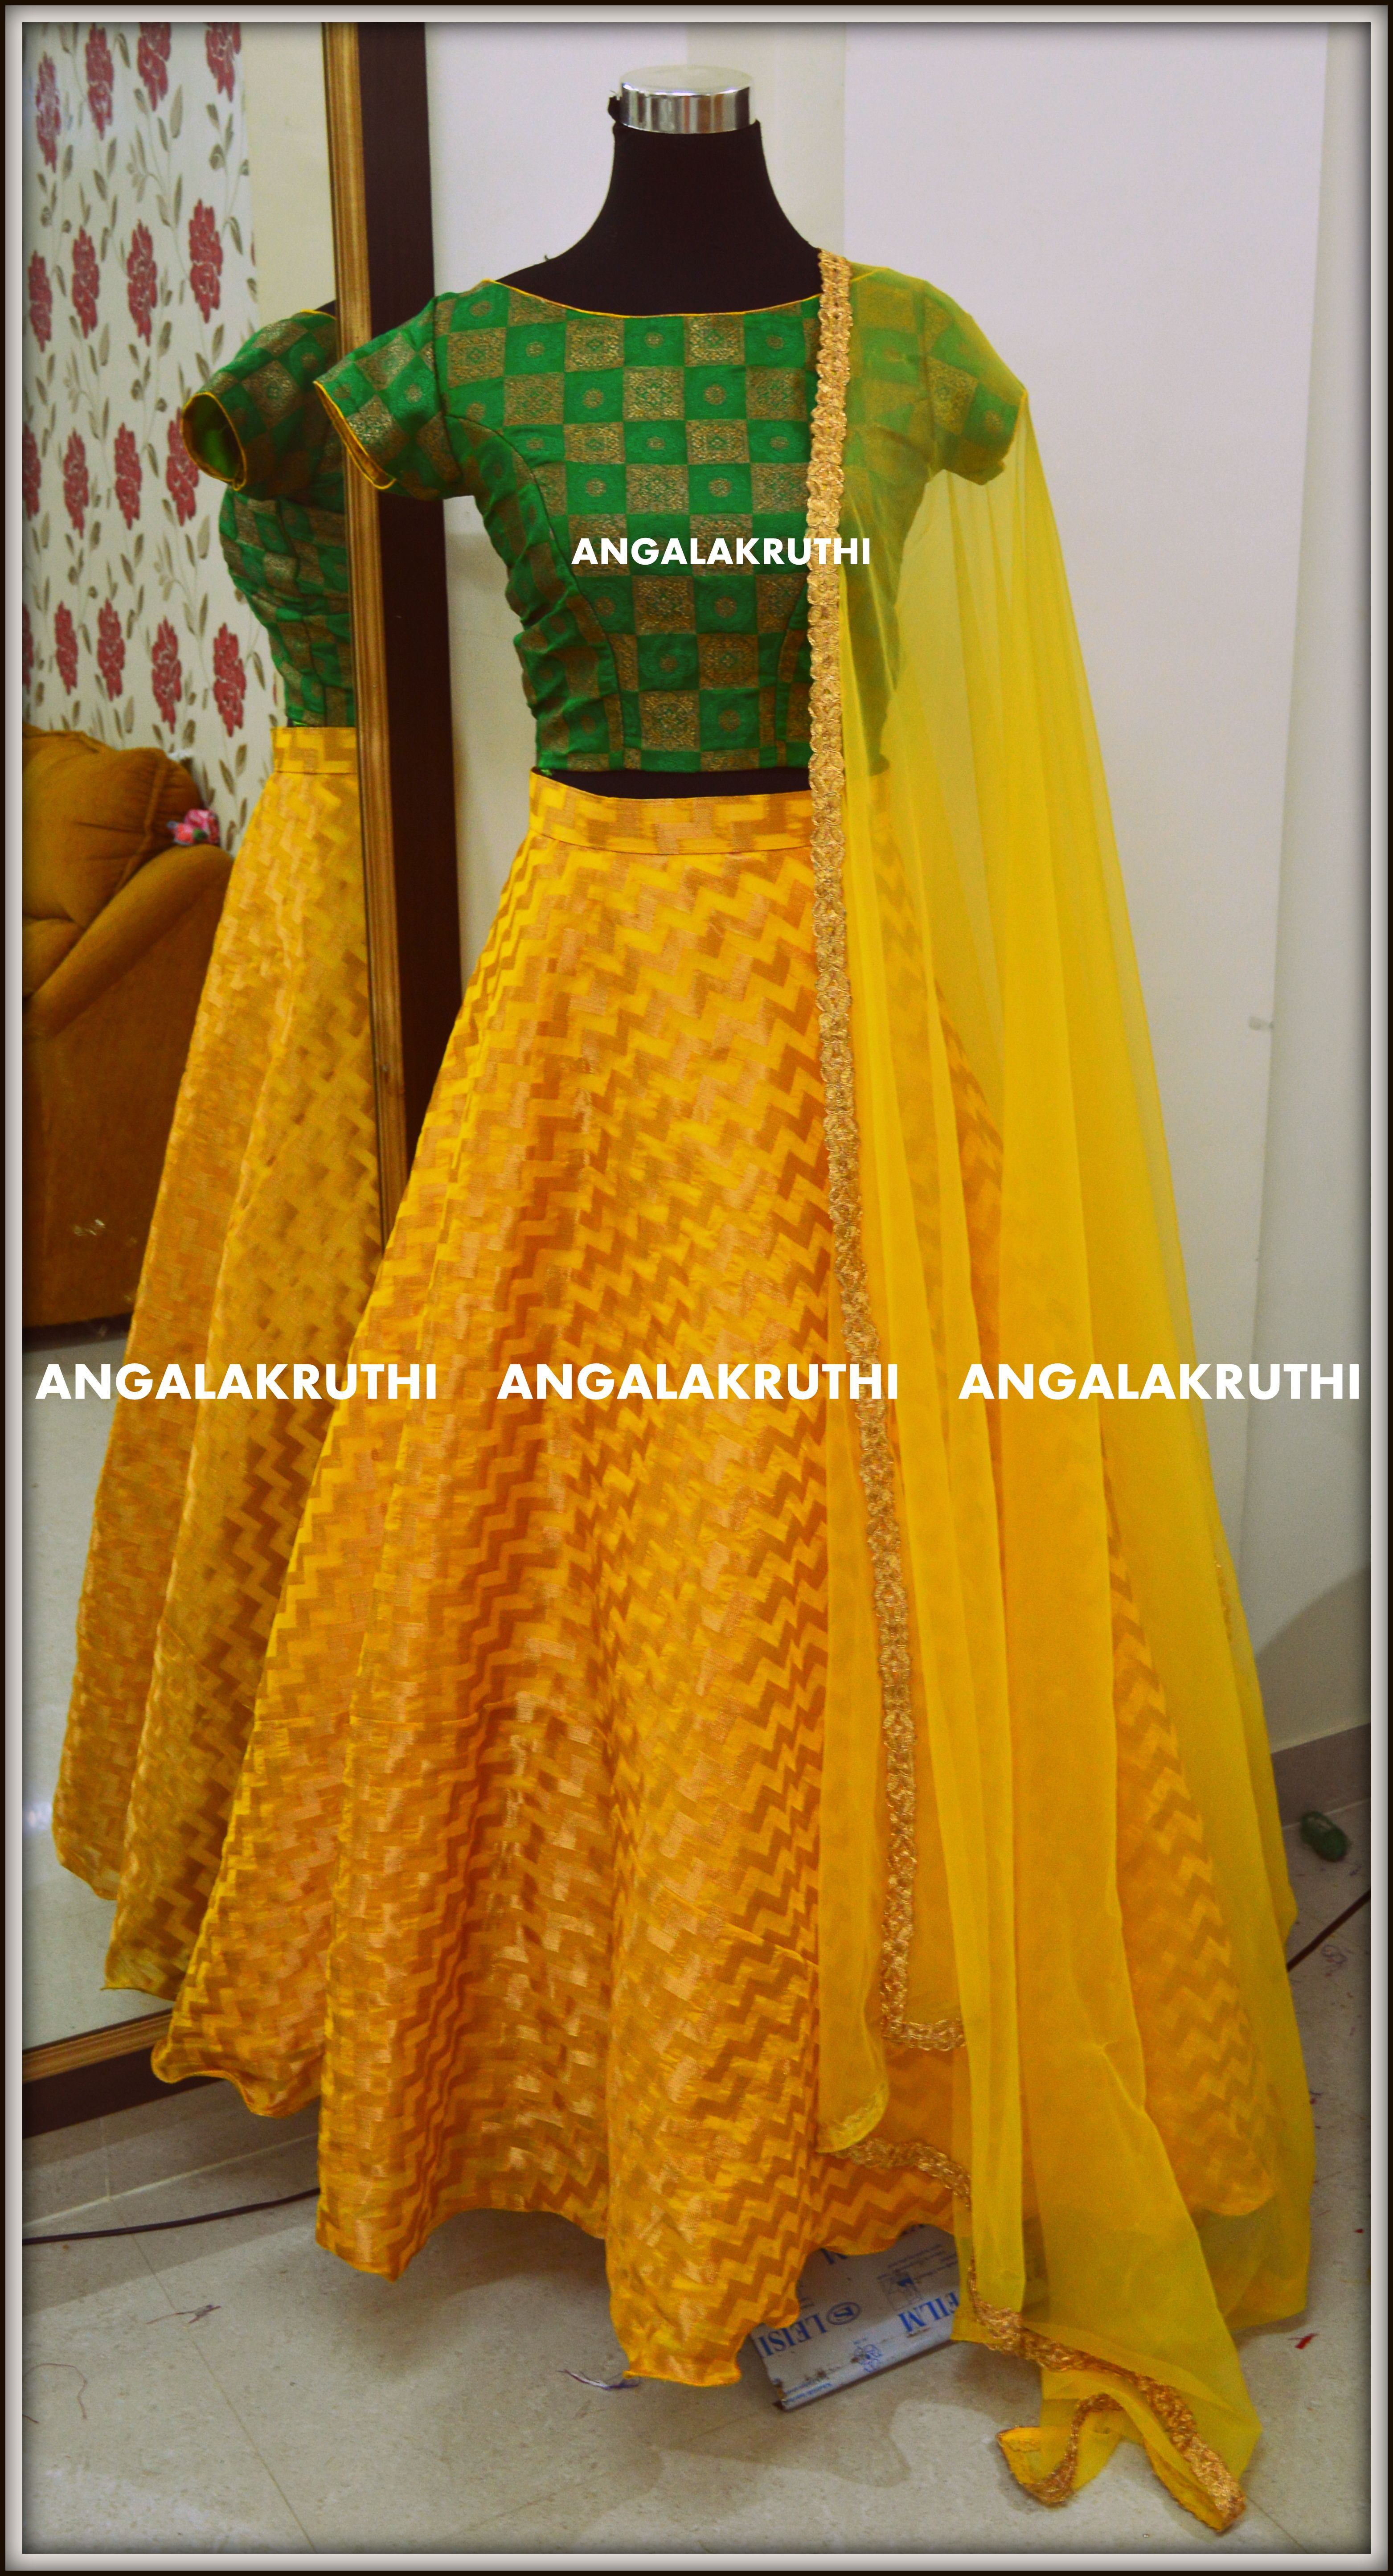 8614470ff7a74  crop top and lehenga design by Angalakruthi  Angalakruthi-Ladies and kids designer  boutique in Bangalore Custom designs with online order placement service ...